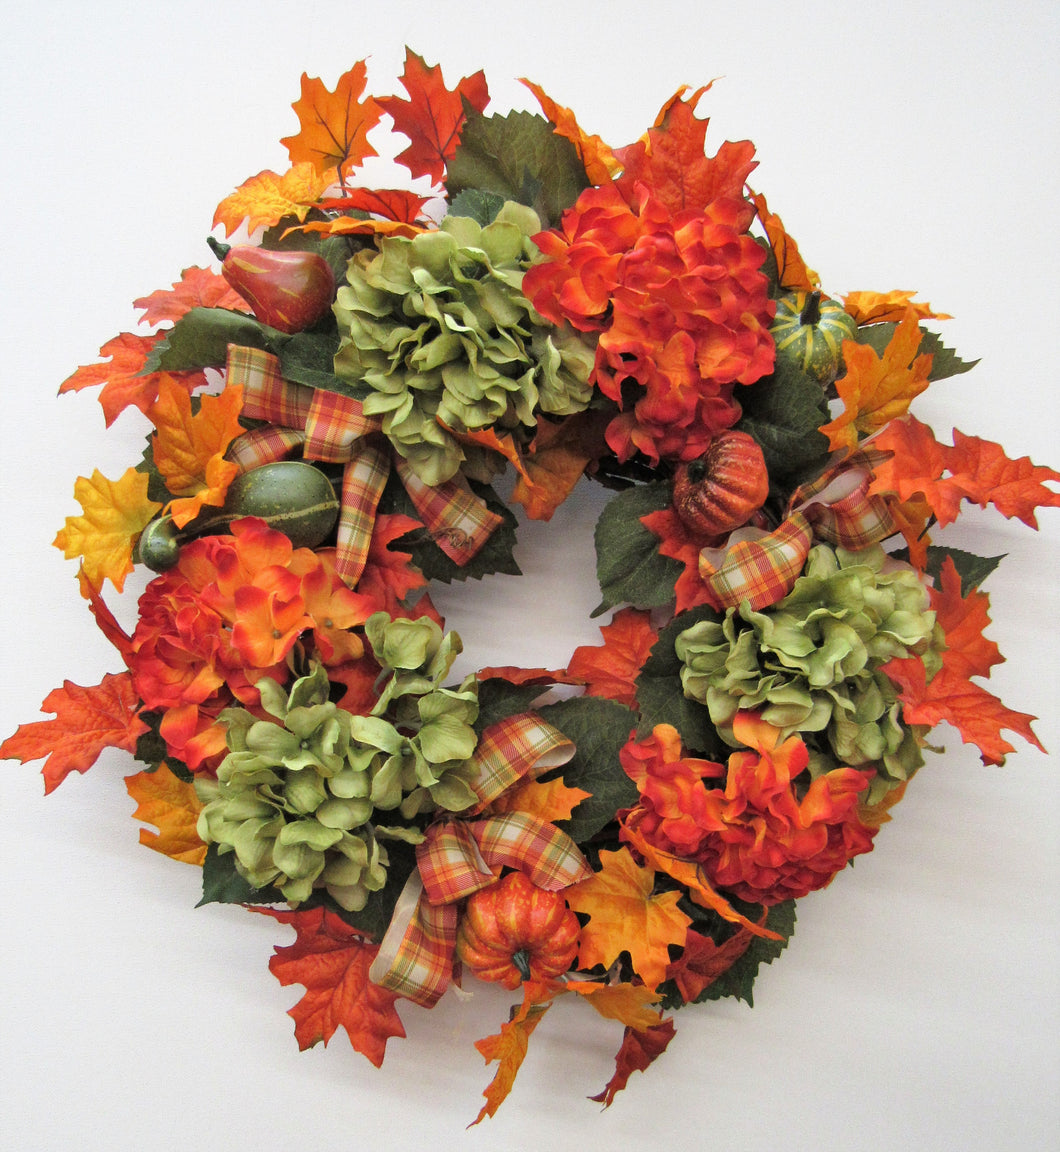 Gallery/Harv11 - April's Garden Wreath